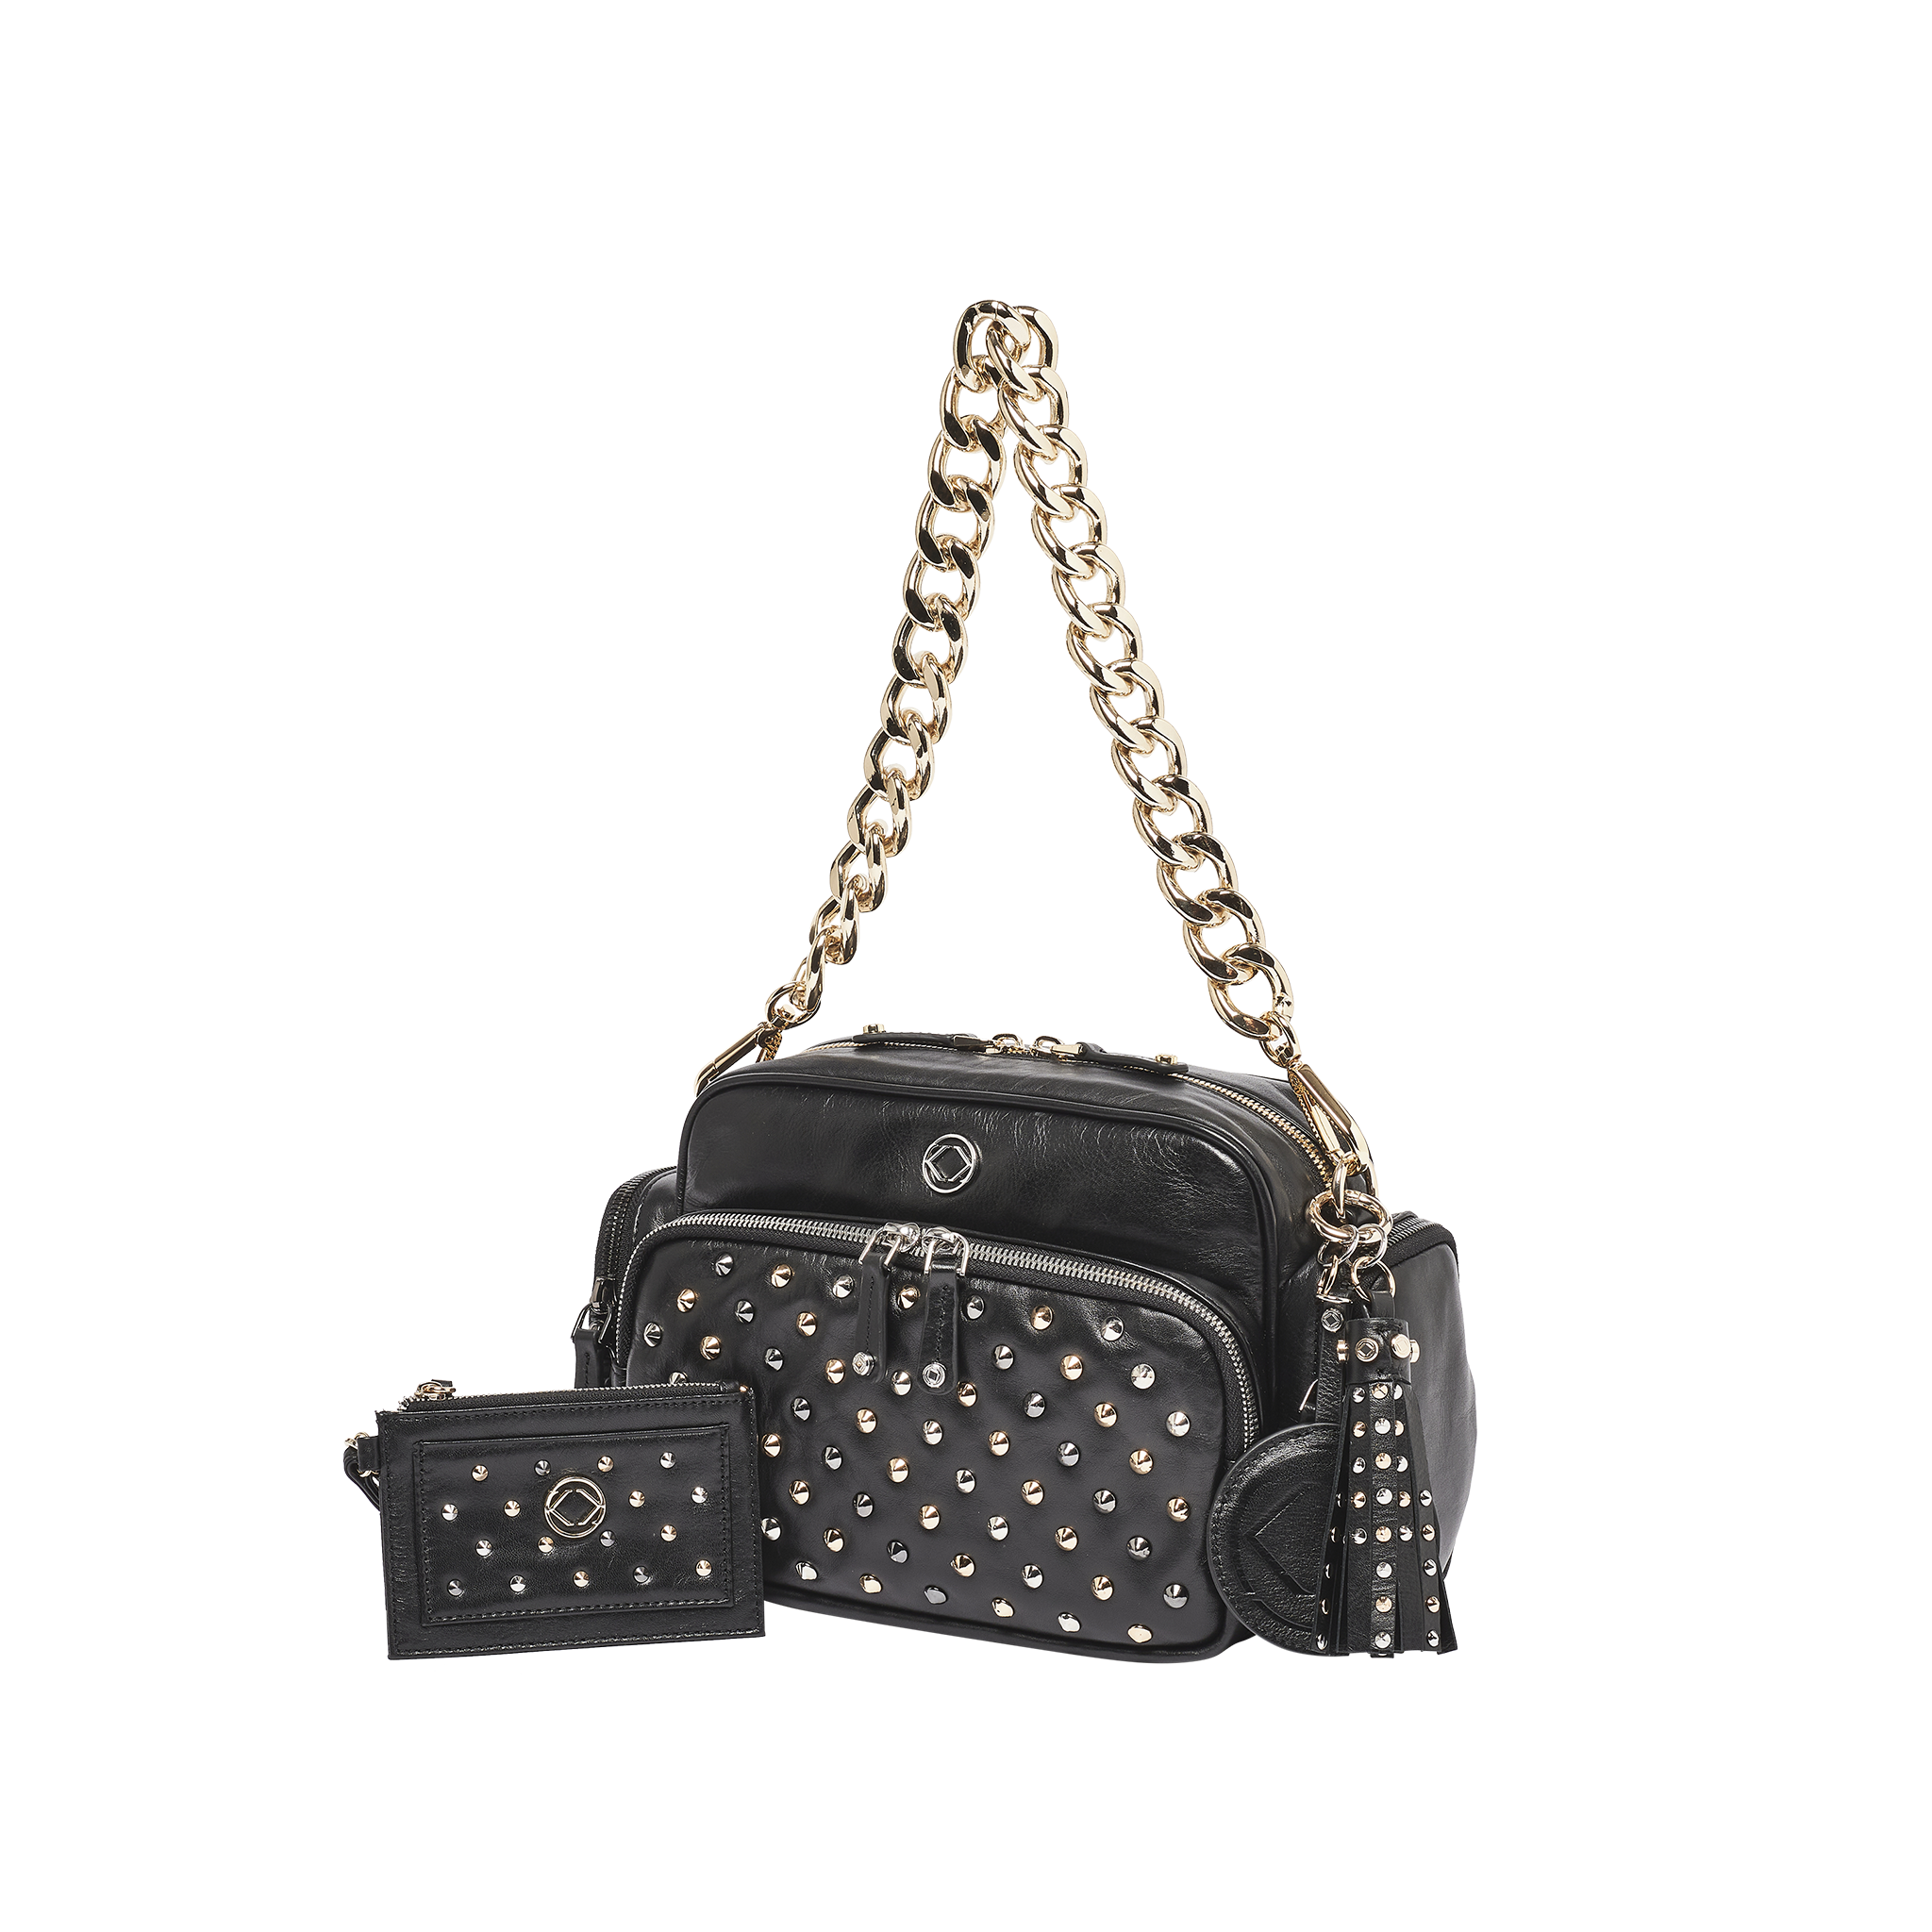 Luxury designer Greta  black studded leather organiser crossbody diaper changing bag with our luxurious chain strap